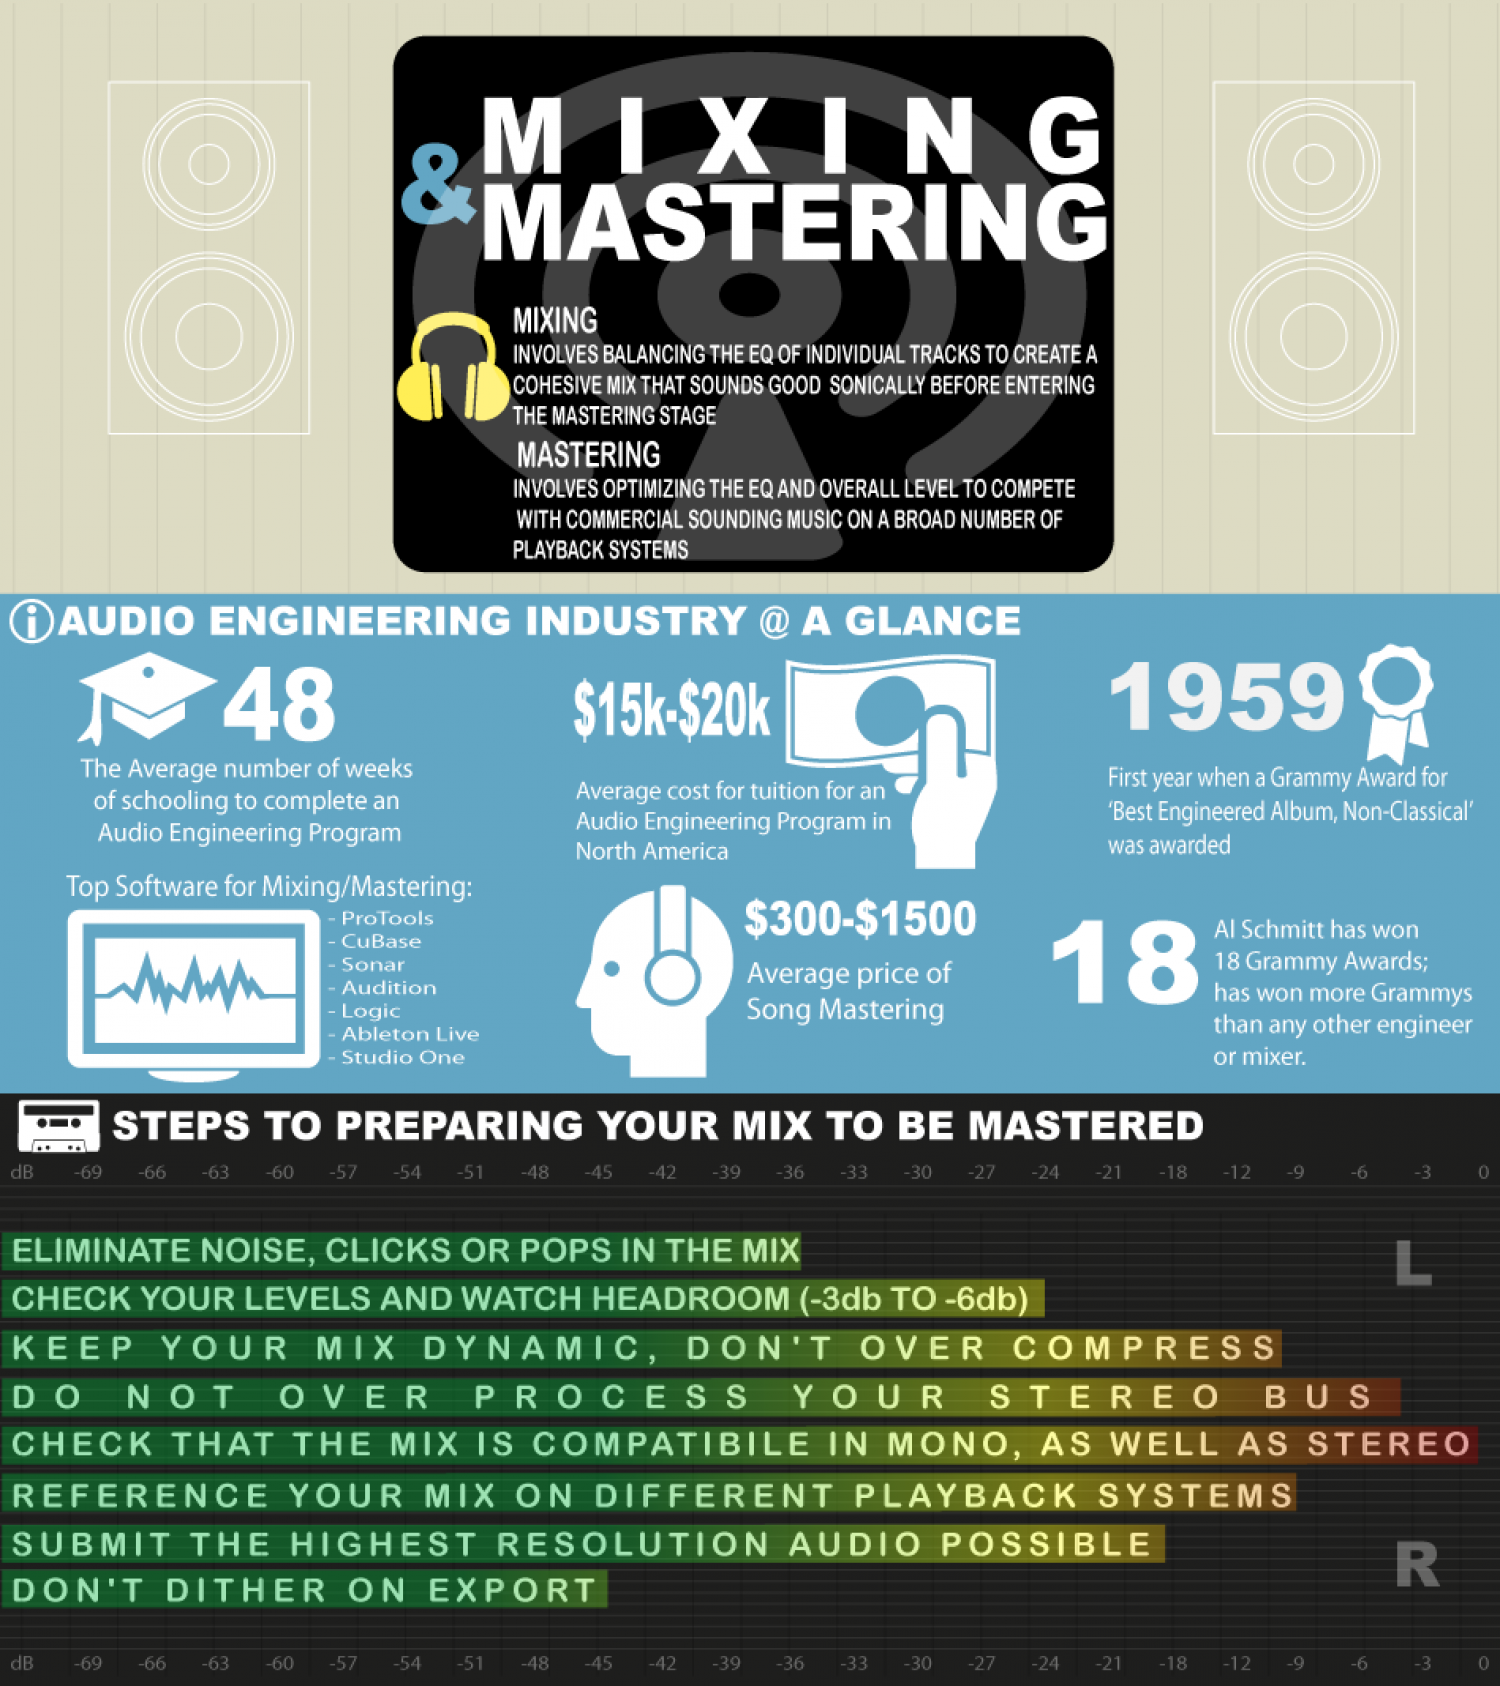 Audio Mixing & Mastering Infographic